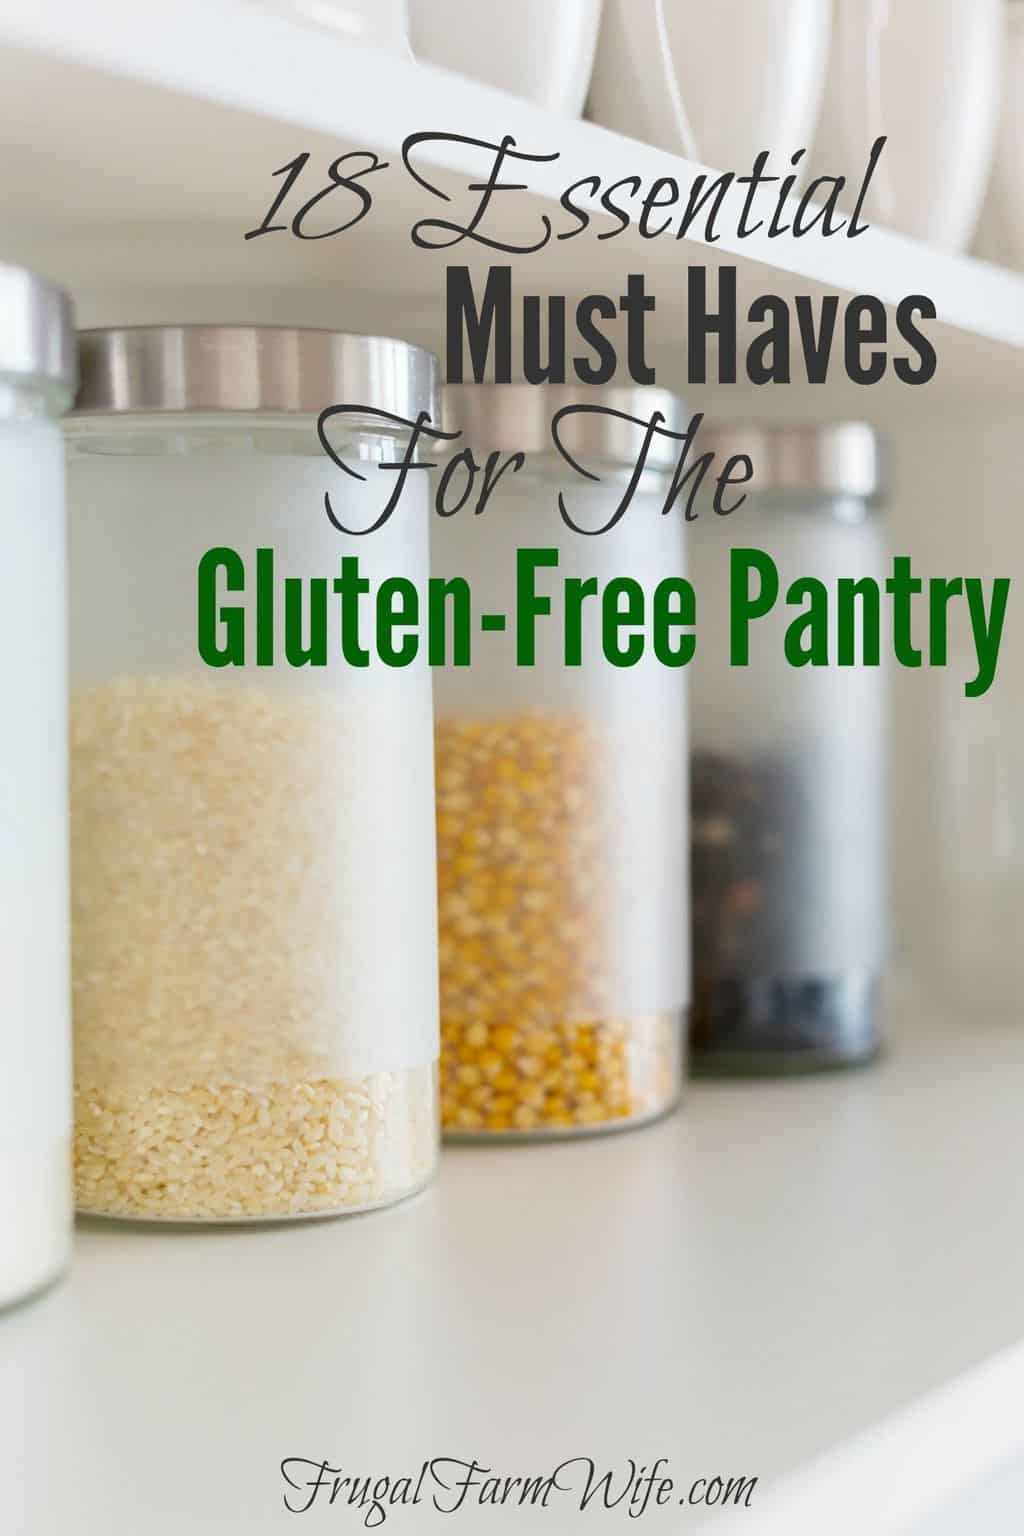 article free farm pantry gluten frugal essentials wife